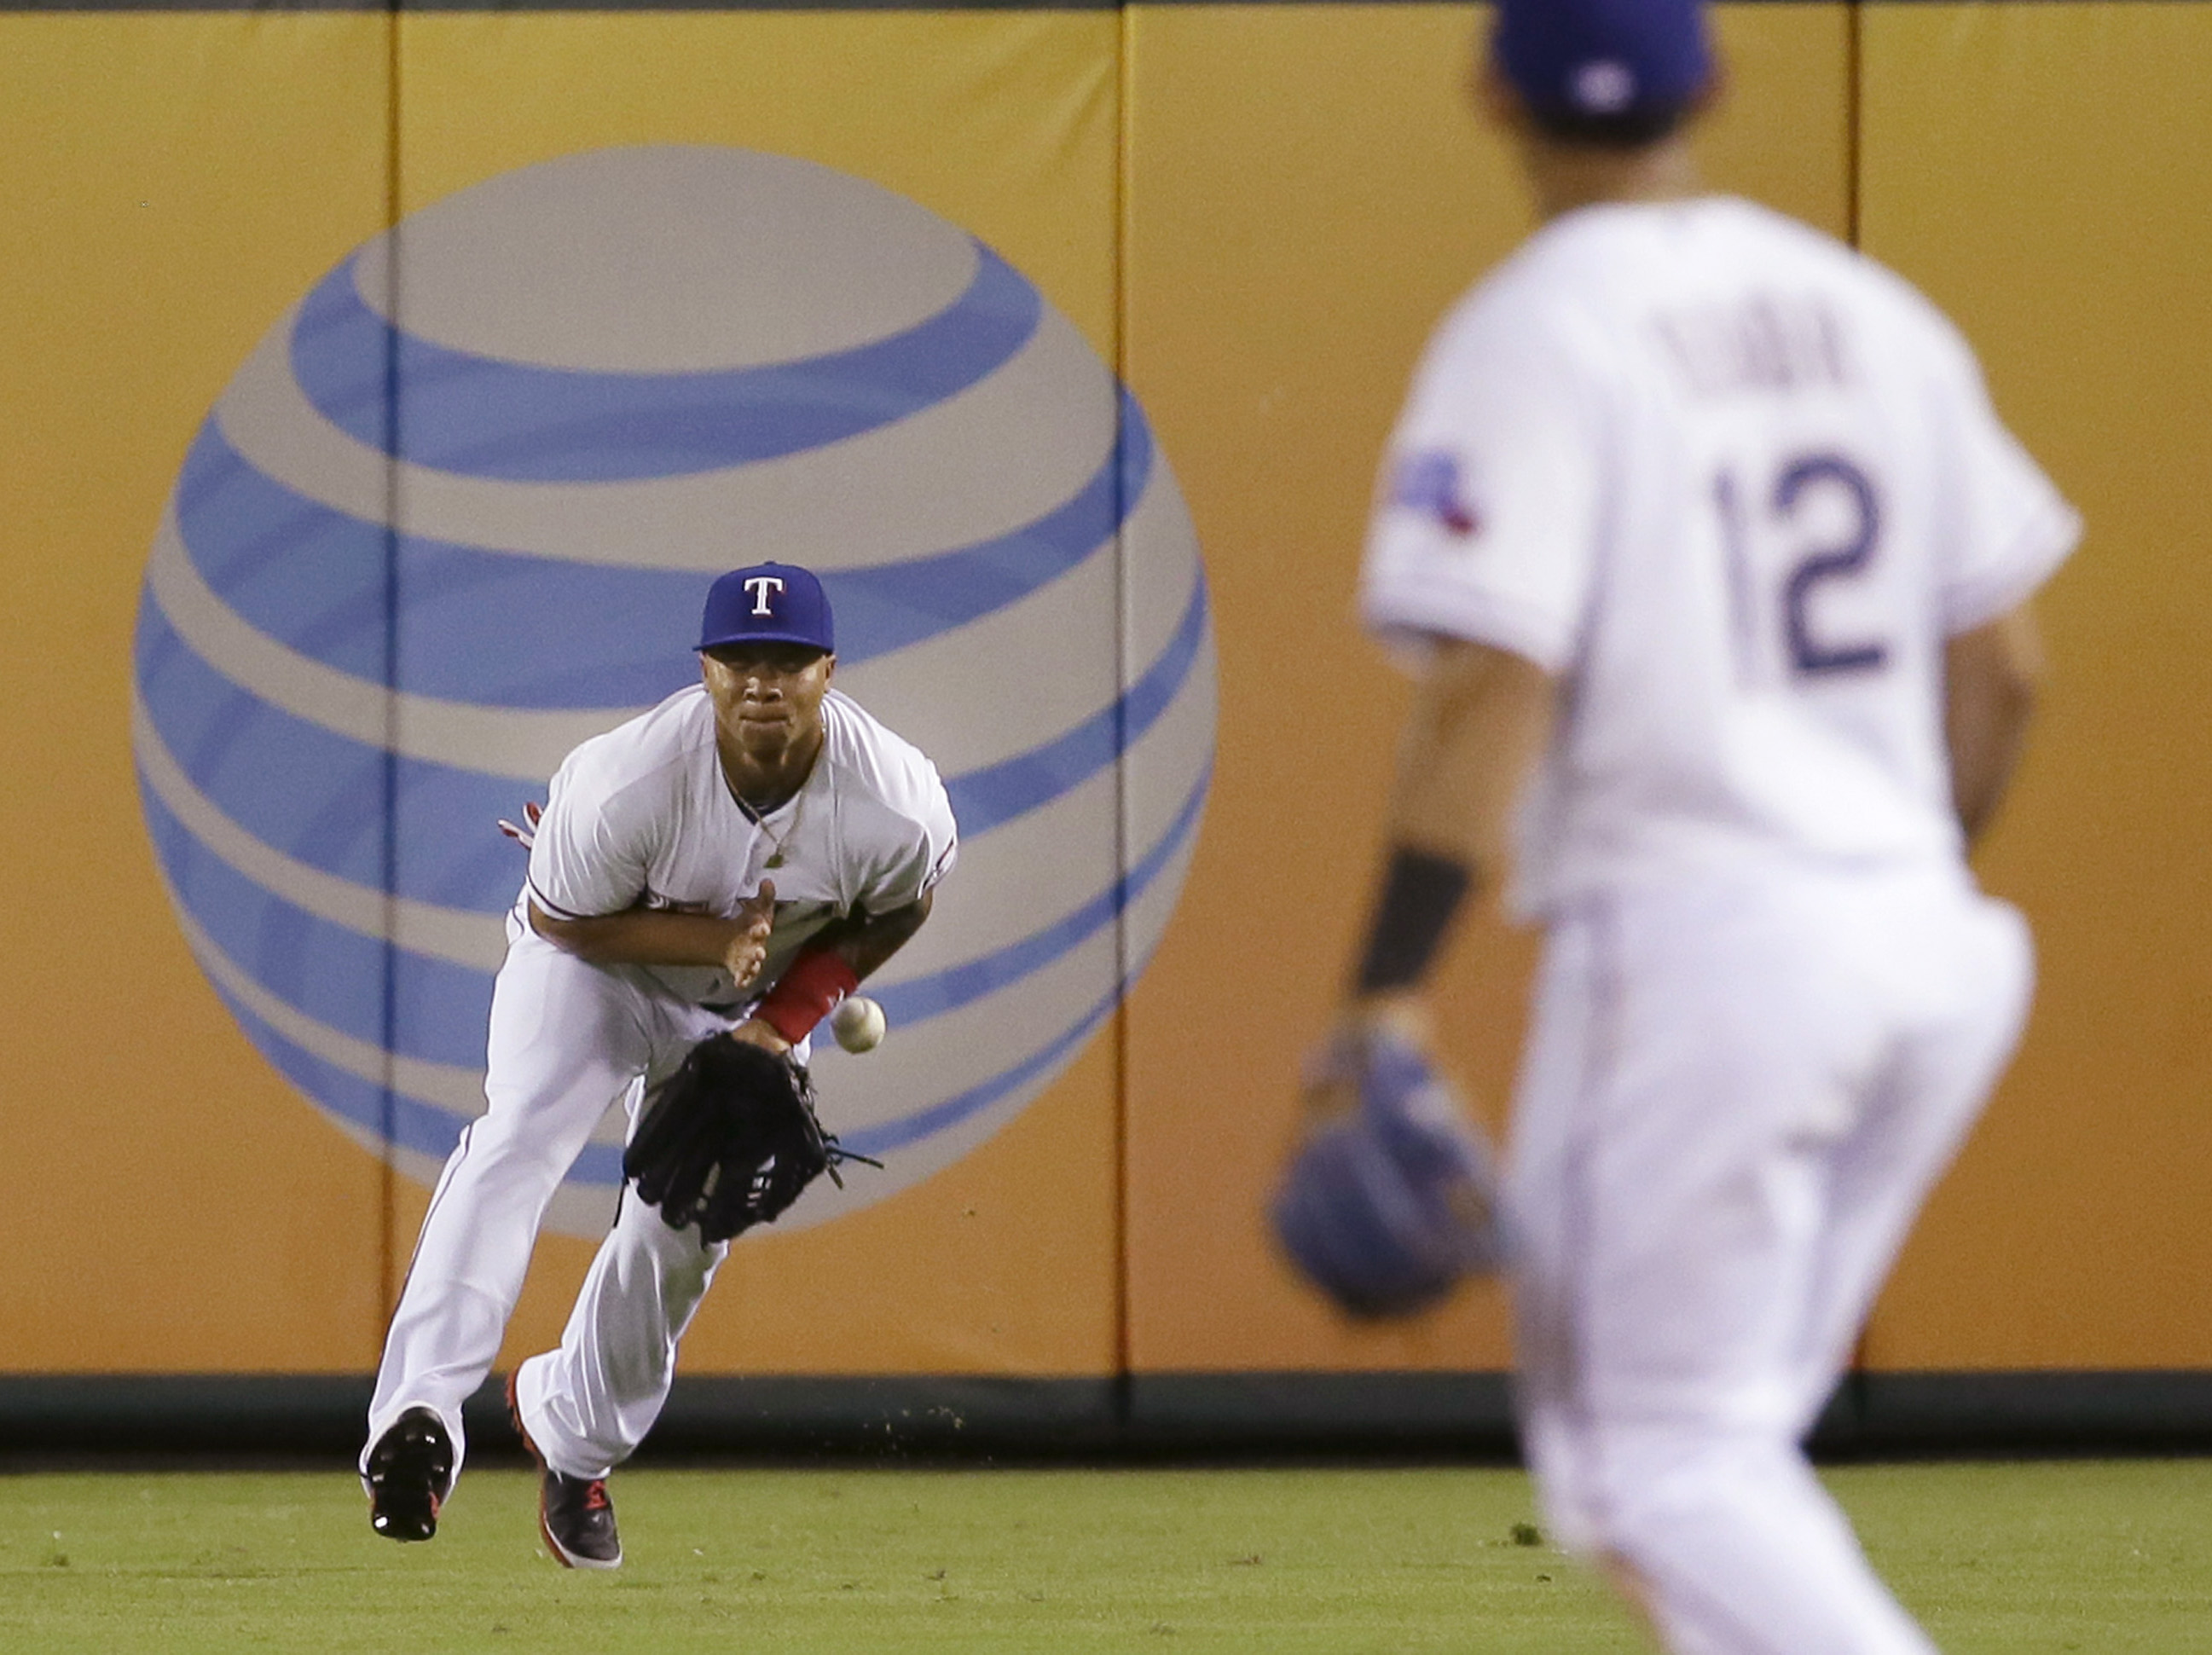 Texas Rangers right fielder Michael Choice, left, commits a fielding error on a single by Oakland Athletics Stephen Vogt during the eighth inning of a baseball game in Arlington, Texas, Wednesday, June 24, 2015. Vogt advanced to third base on the play. Th